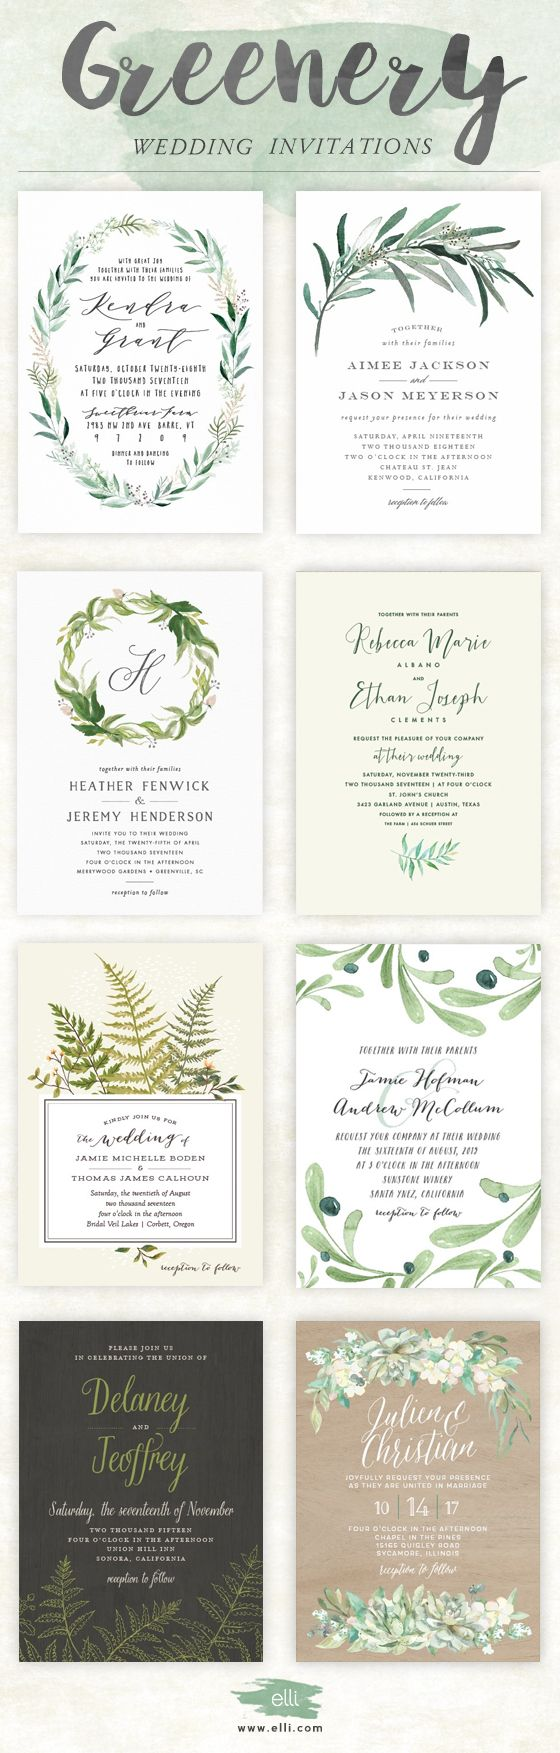 wedding invitation sample by email%0A Trending for       greenery wedding invitations from Elli com